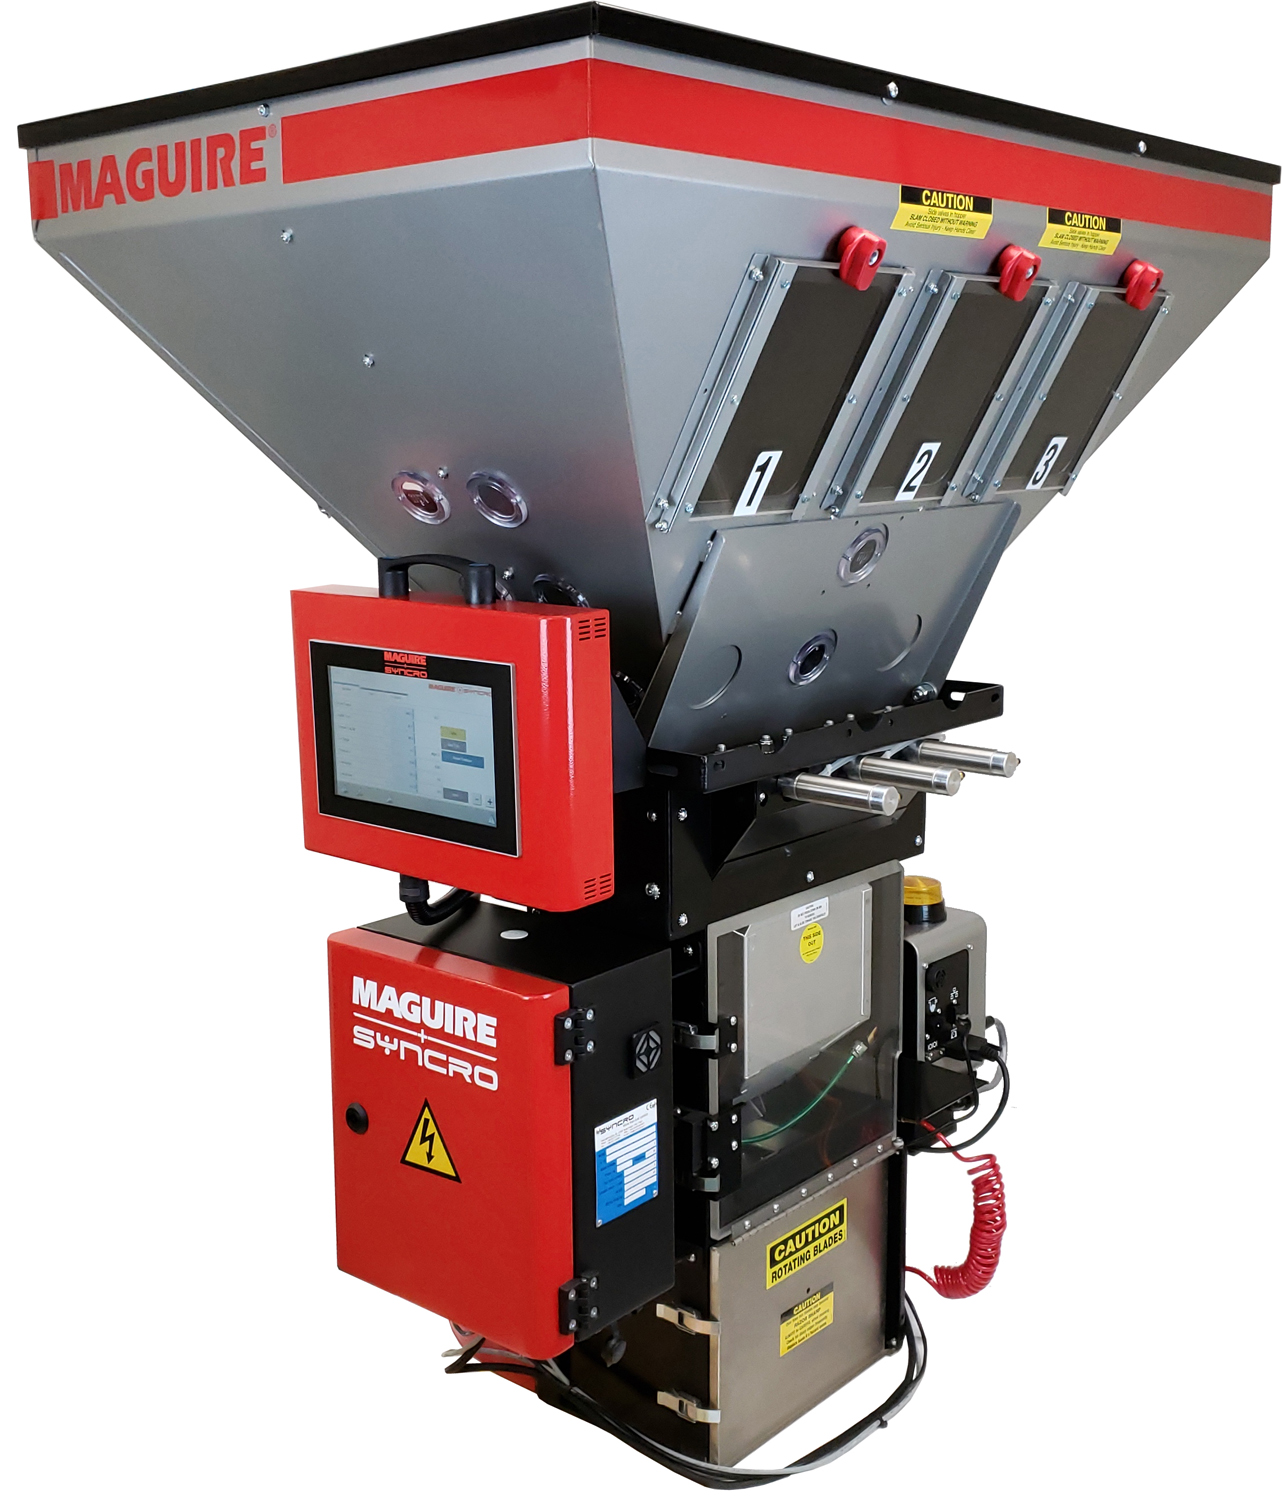 WXB 460 weigh extrusion blender (Source: Maguire Products)